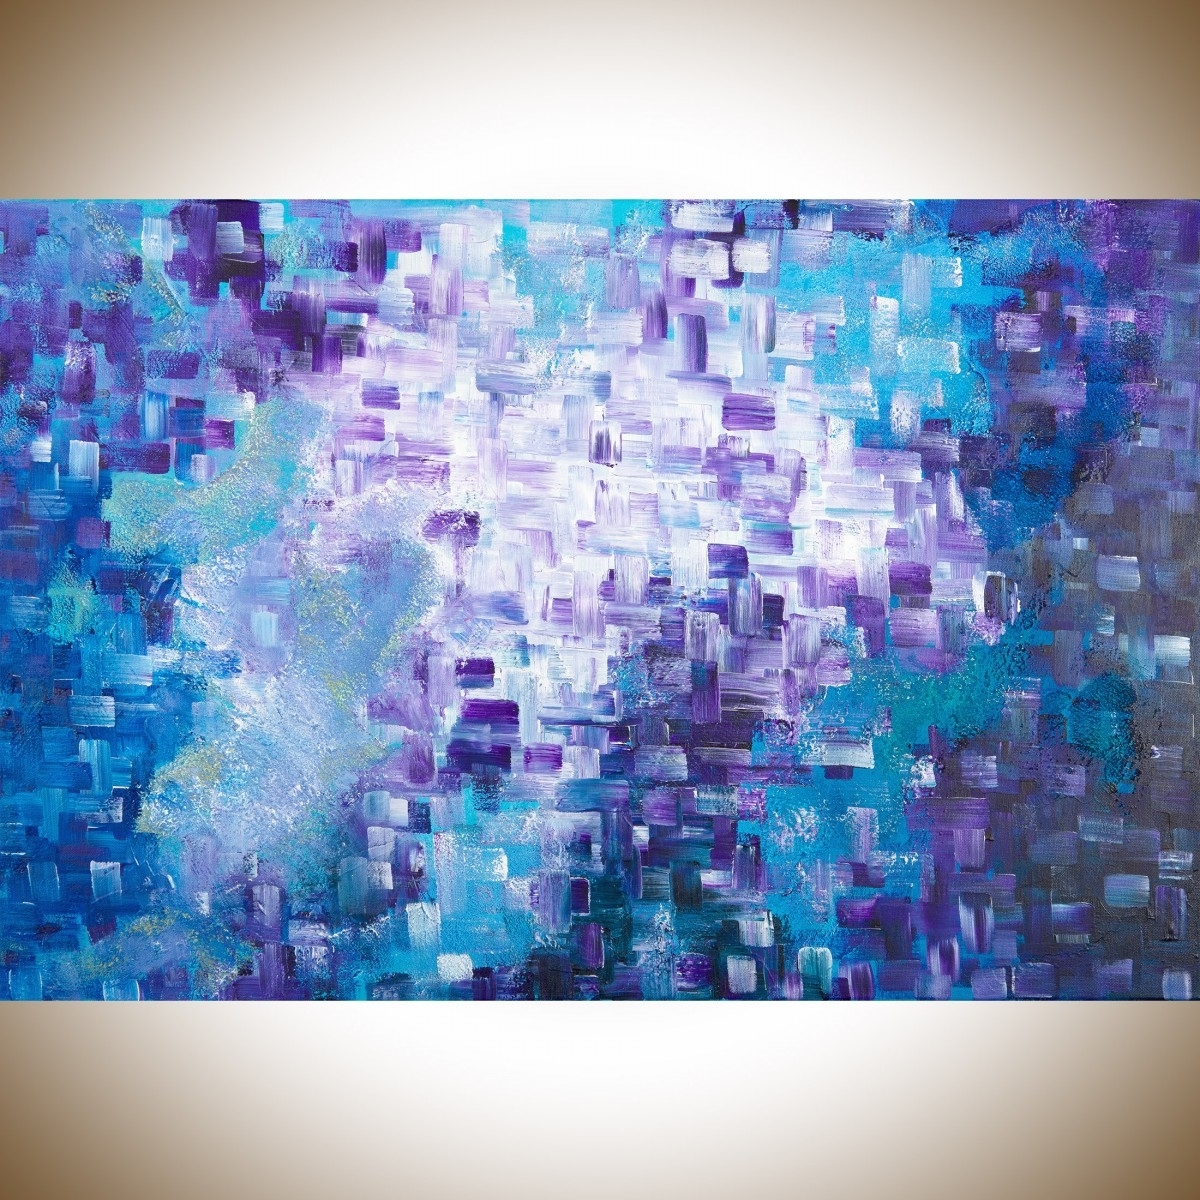 "Dissolvingqiqigallery 36""x24"" Stretched Canvas Original Large Inside Trendy Purple Wall Art Canvas (View 4 of 15)"